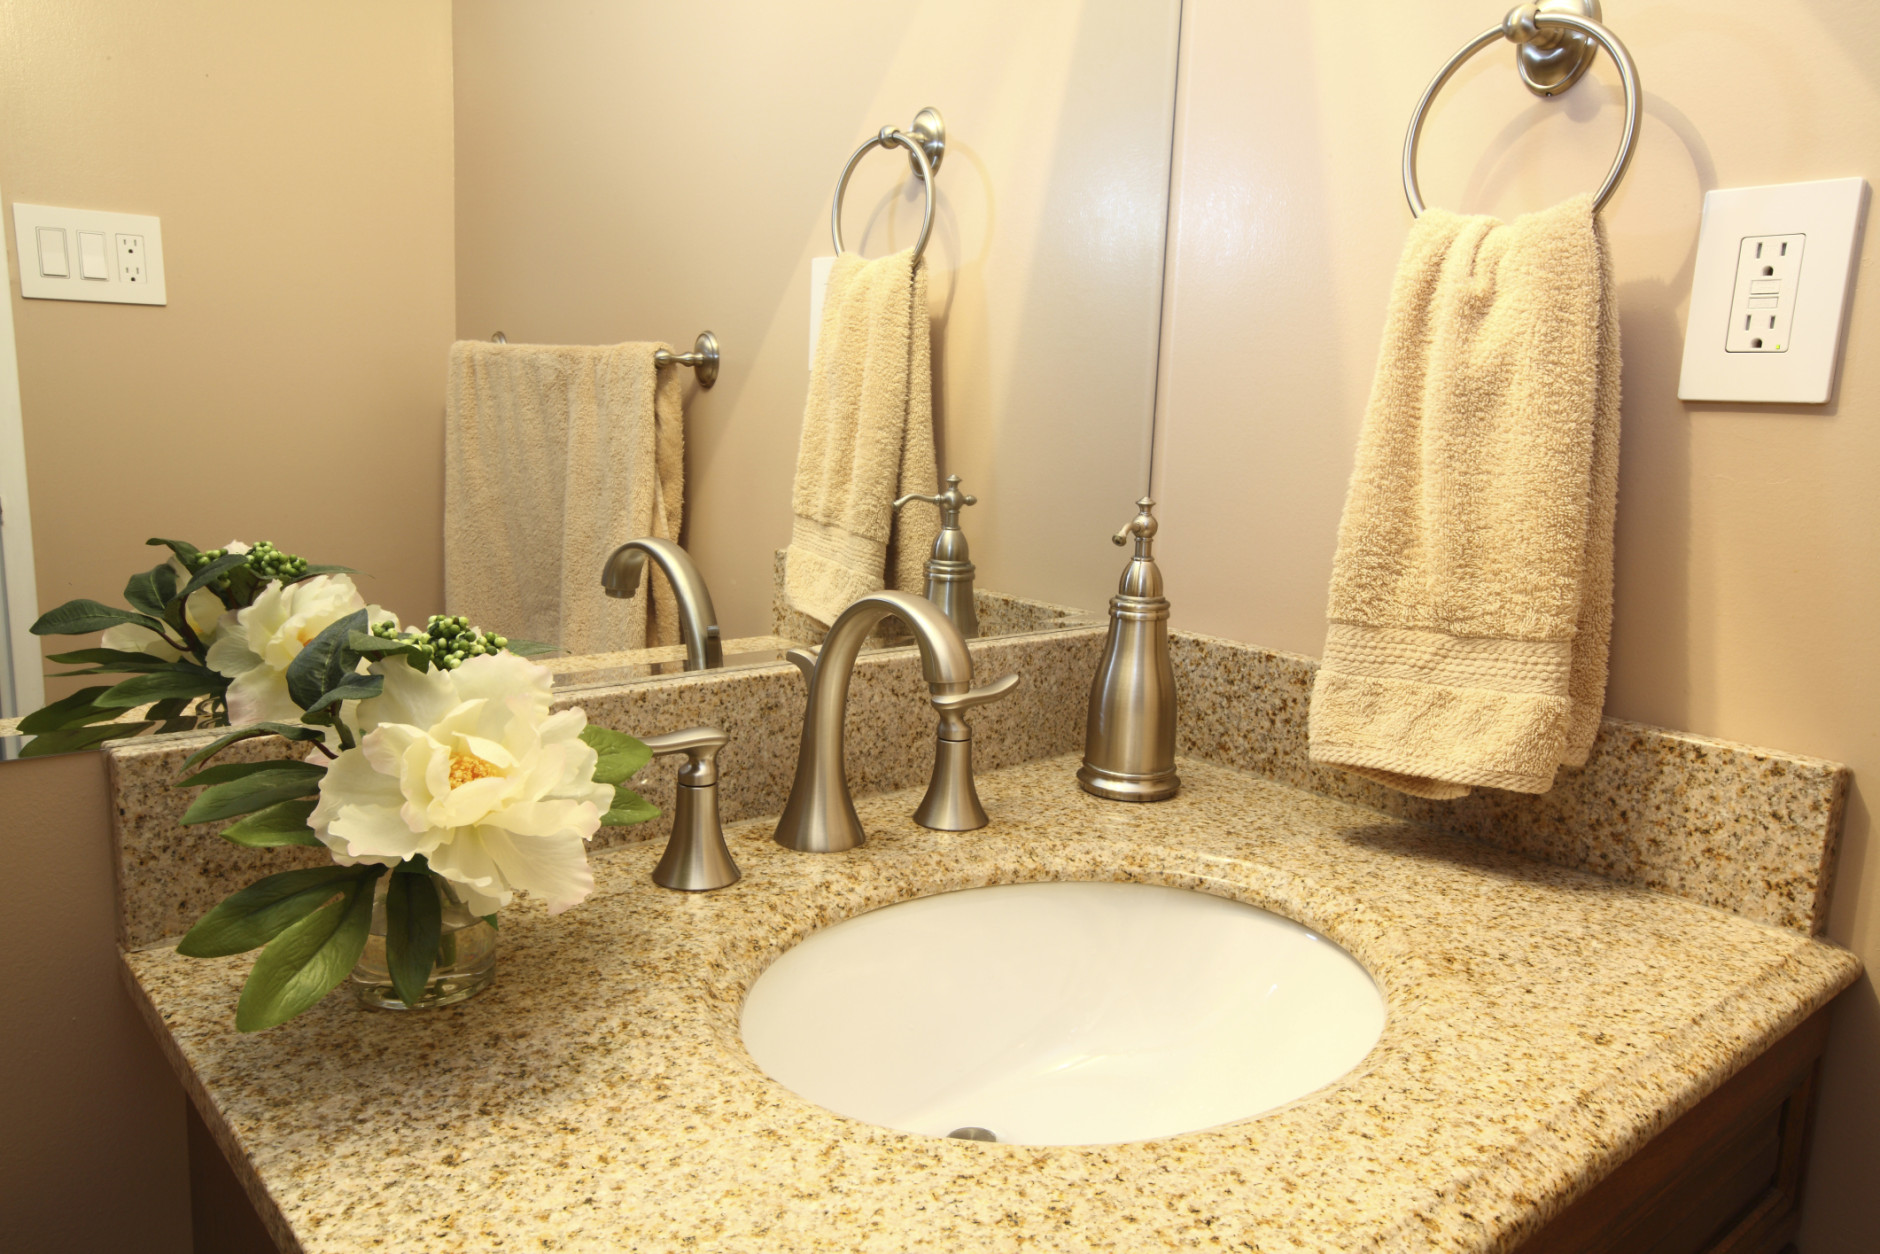 Modern bathroom vanity with beige granite top and faucets (Getty Images/iStockphoto/bukharova)